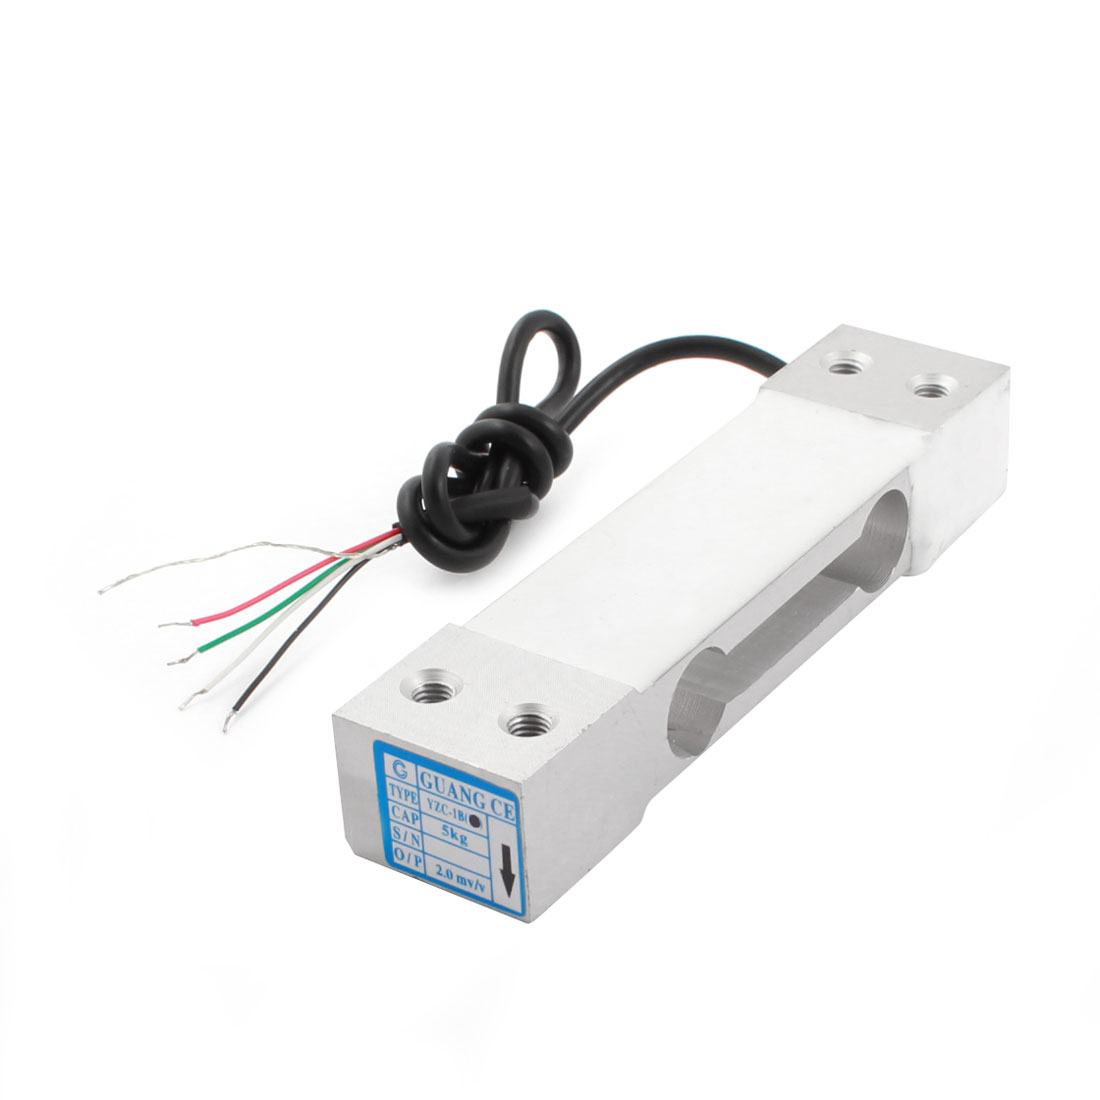 Electronic Platform Scale Part Rectangle Aluminium Alloy Load Cell Weight Pressure Sensor 5Kg 11lb YAC-1B